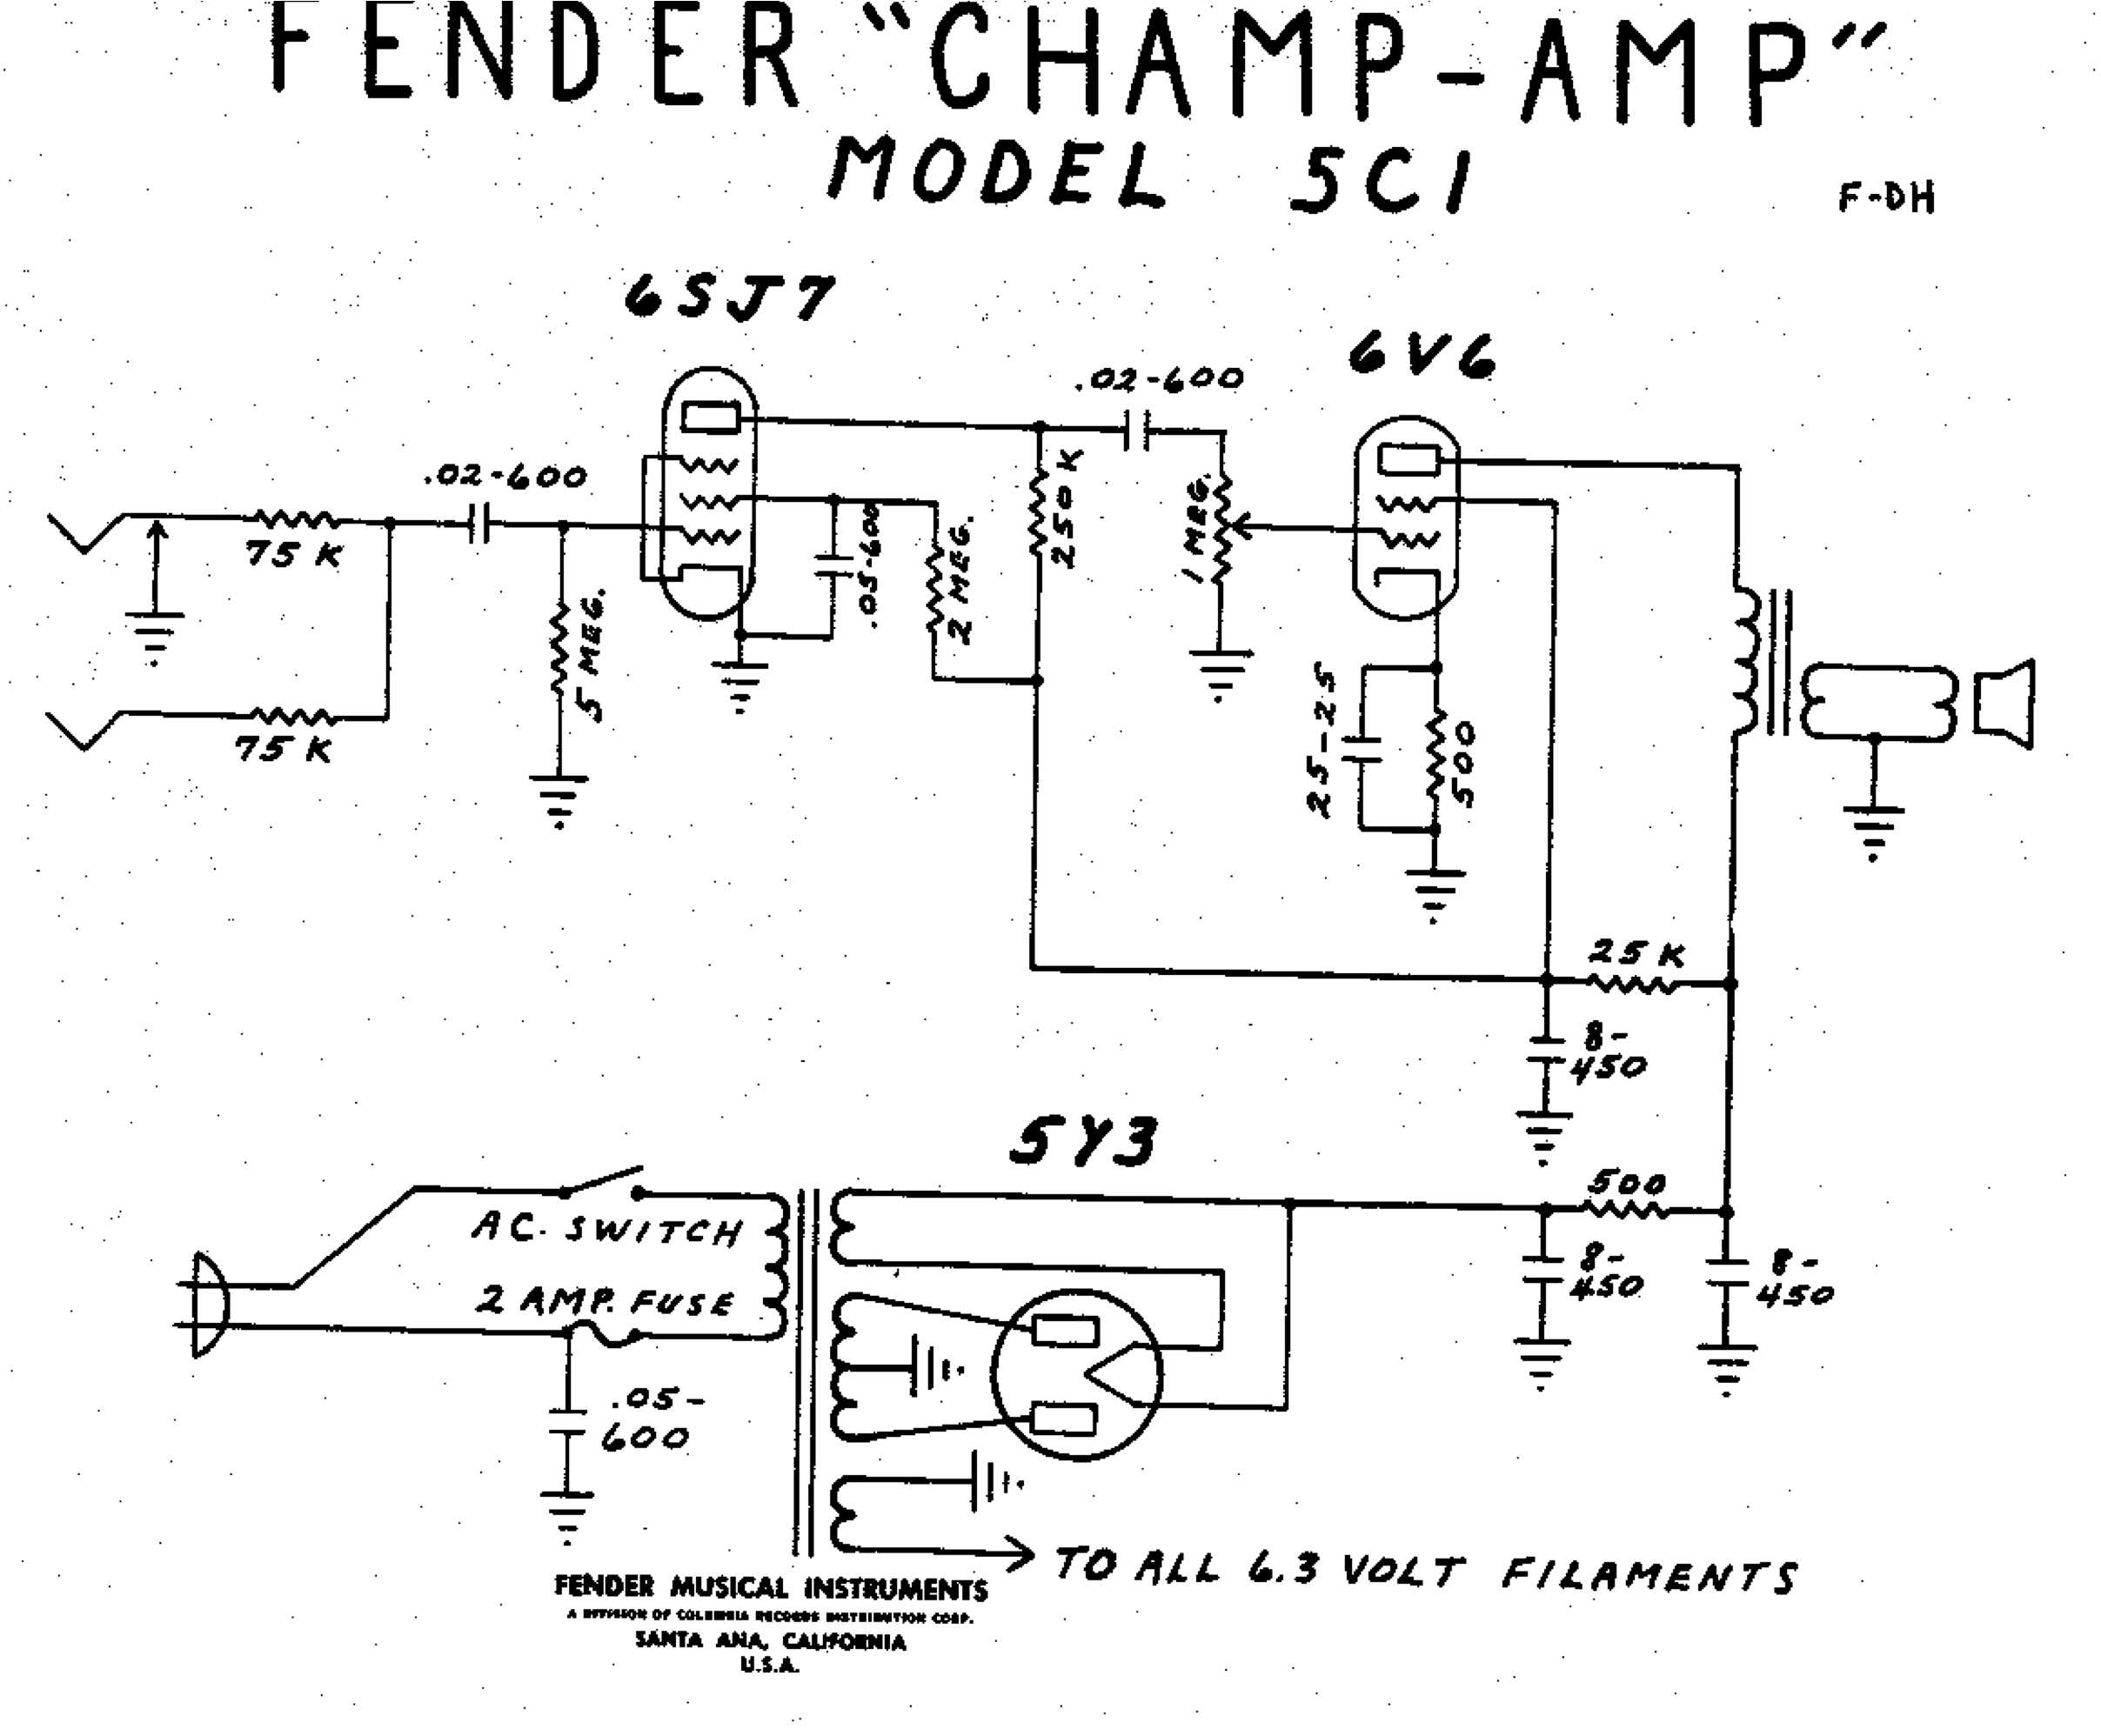 fender champ 5c1 wiring diagram my fender champ vintage amps wiring diagram 5c1 tweed fender champ